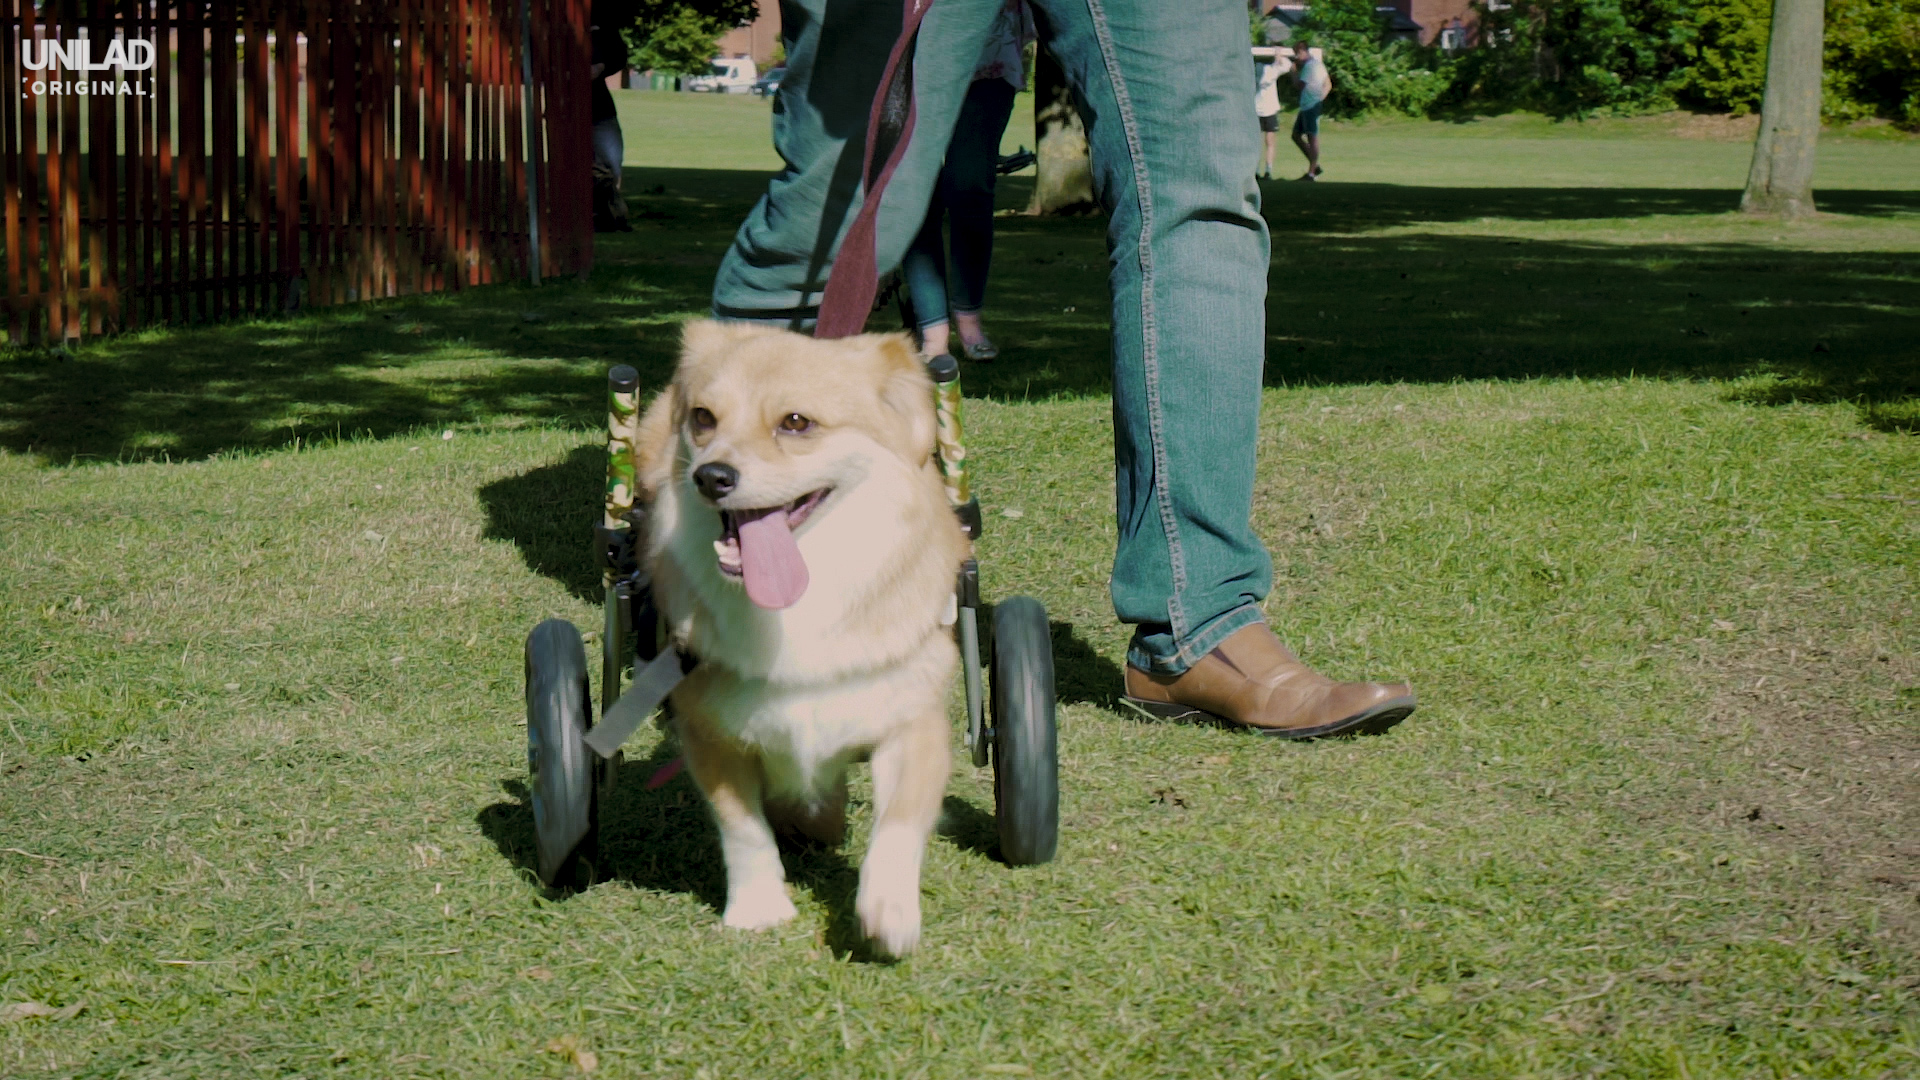 Couple Rescue Disabled Dogs And Give Them Wheelchairs Disabled Dogs Edit 2.00 04 31 10.Still018